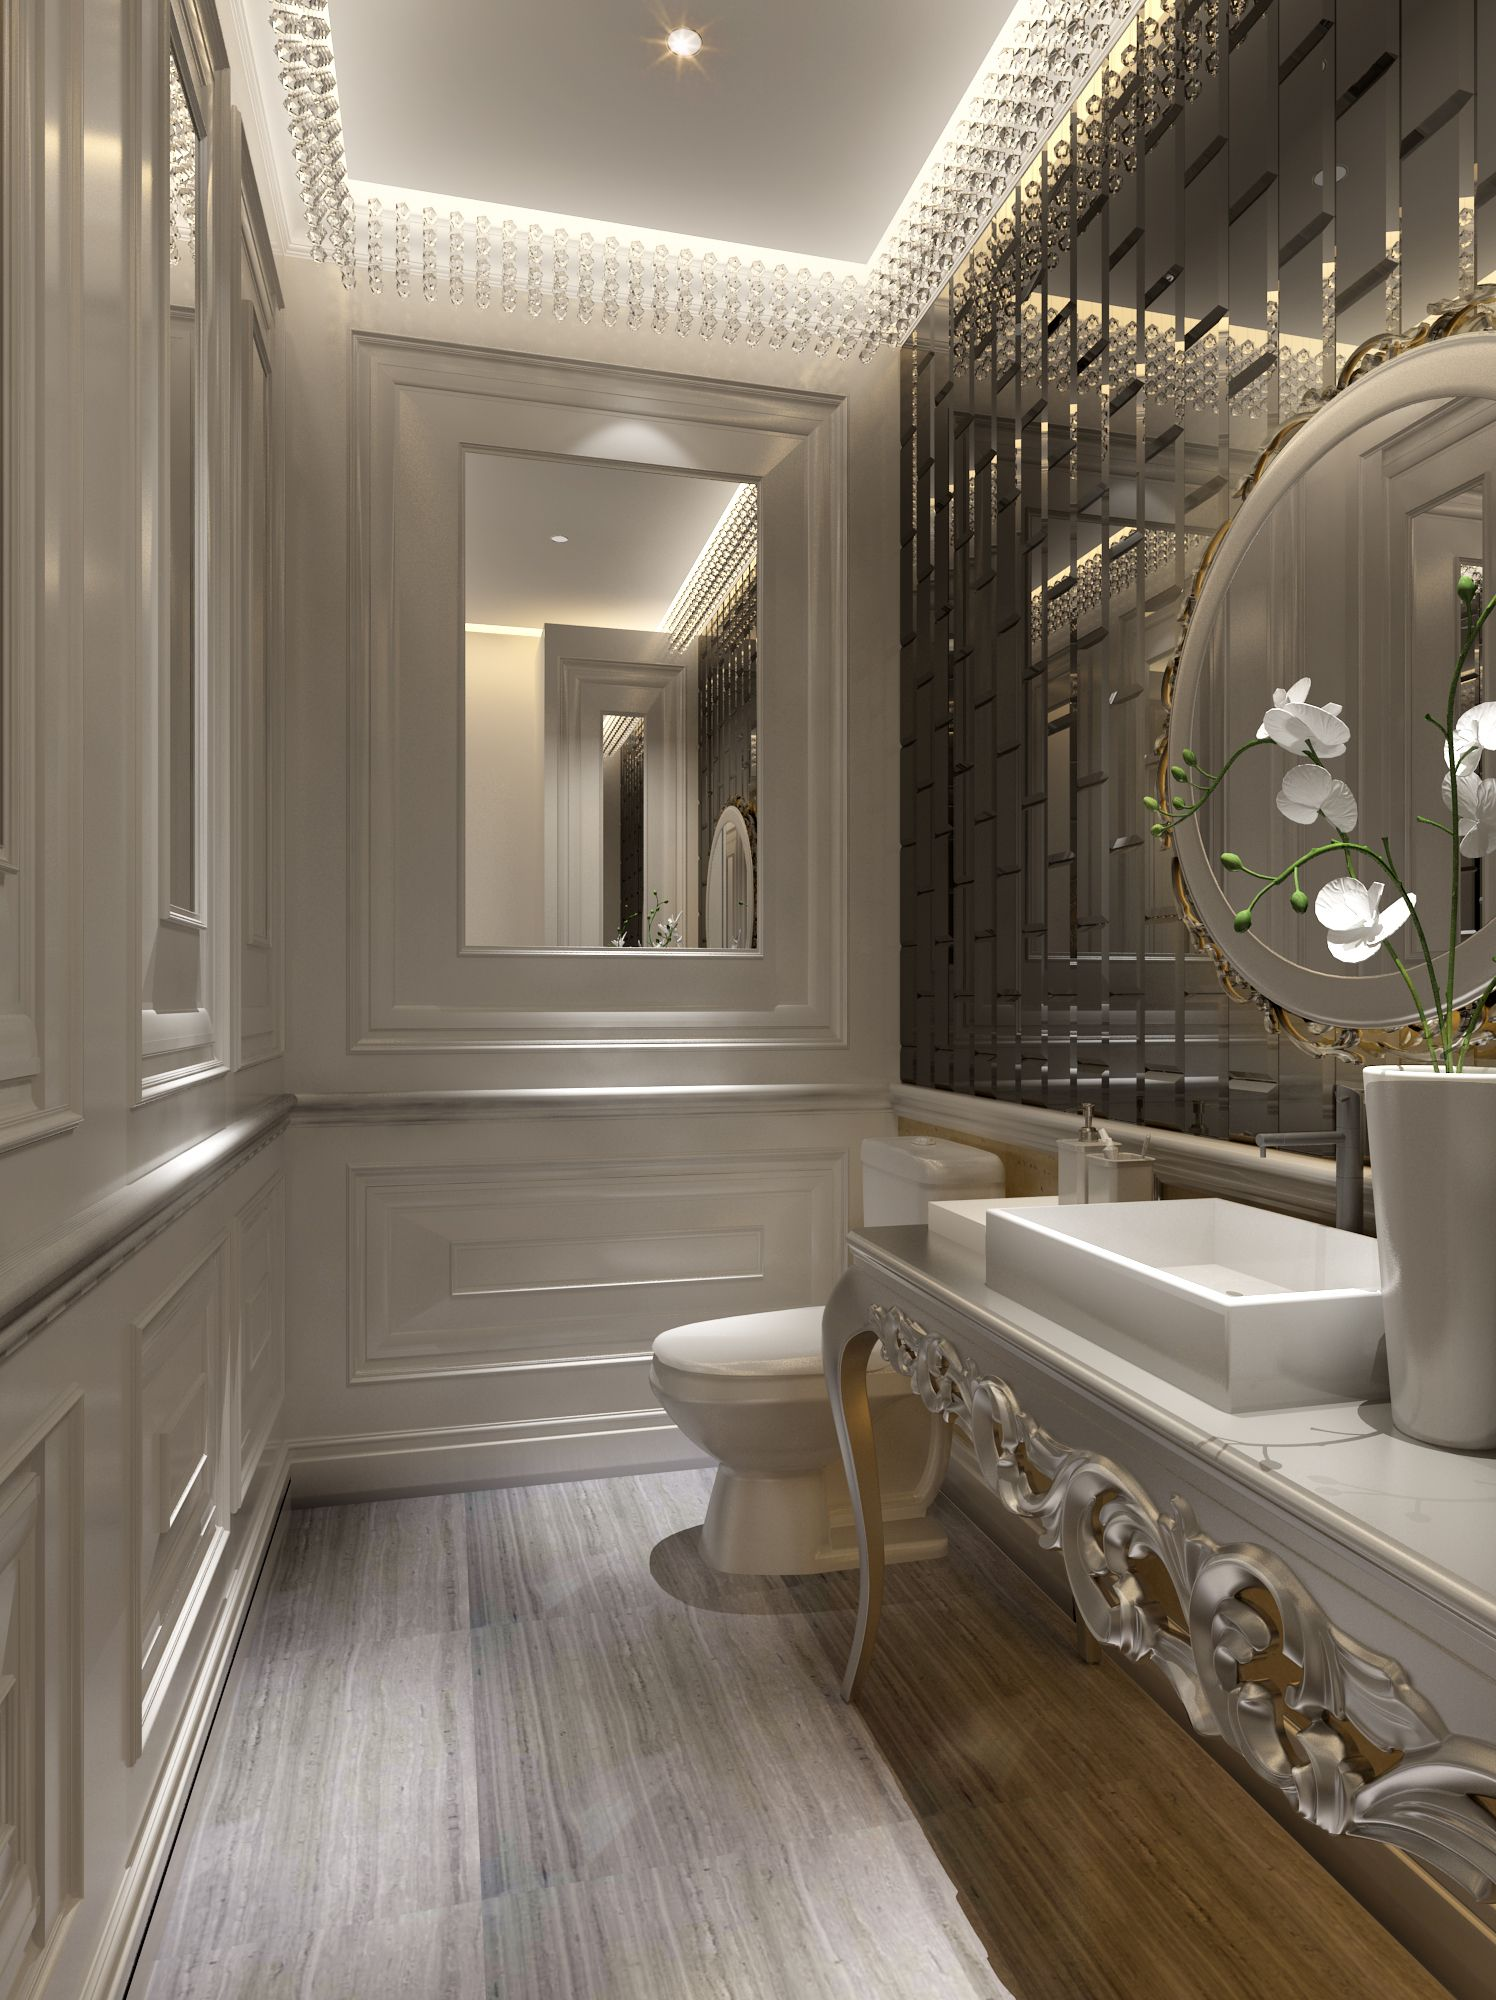 10 Must-See Luxury Bathroom Ideas  Luxury Bathroom Ideas that